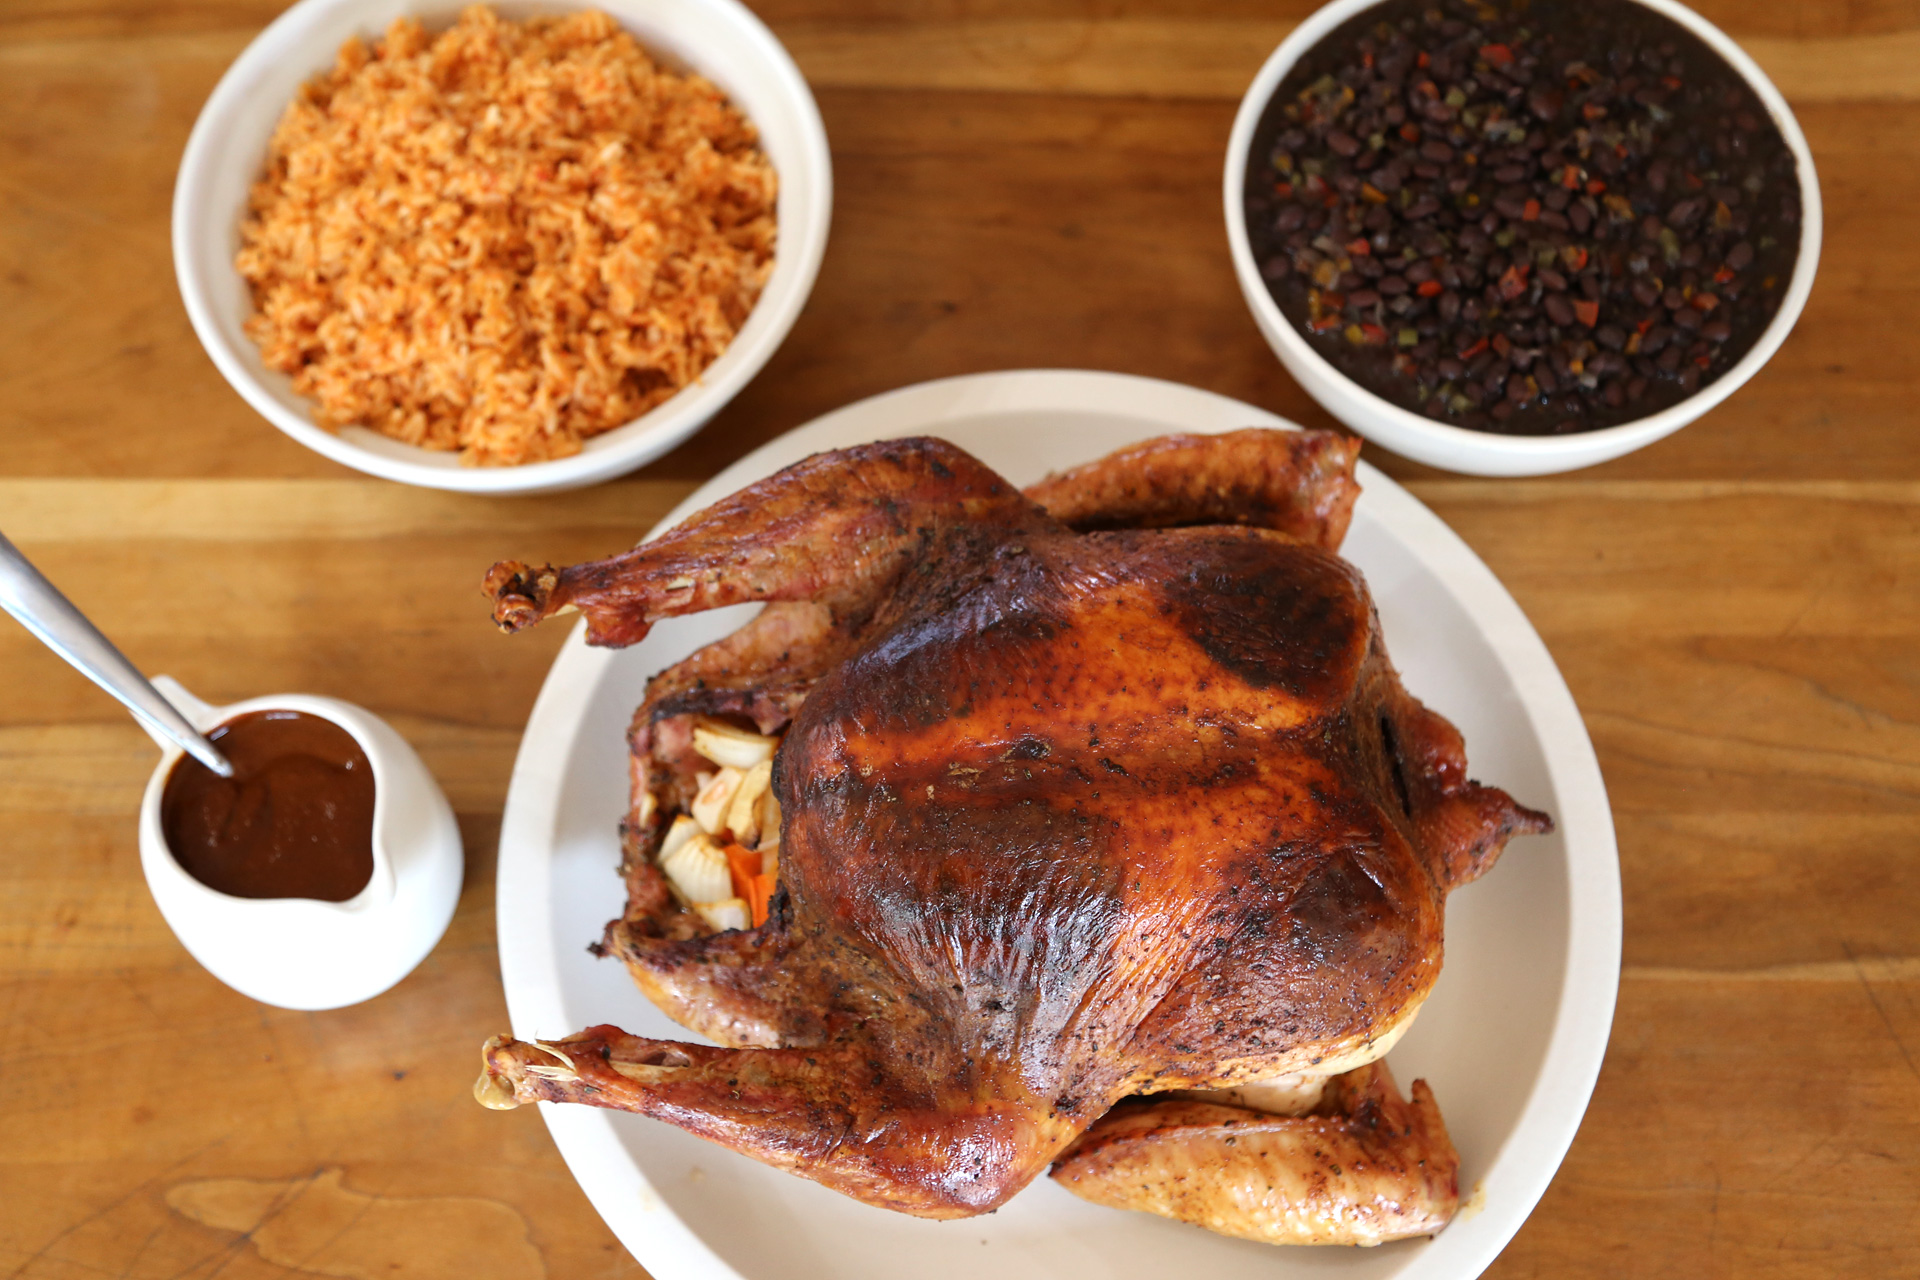 Chile-Rubbed Roast Turkey served with Savory Black Beans, Mexican Rice and Mole Gravy.